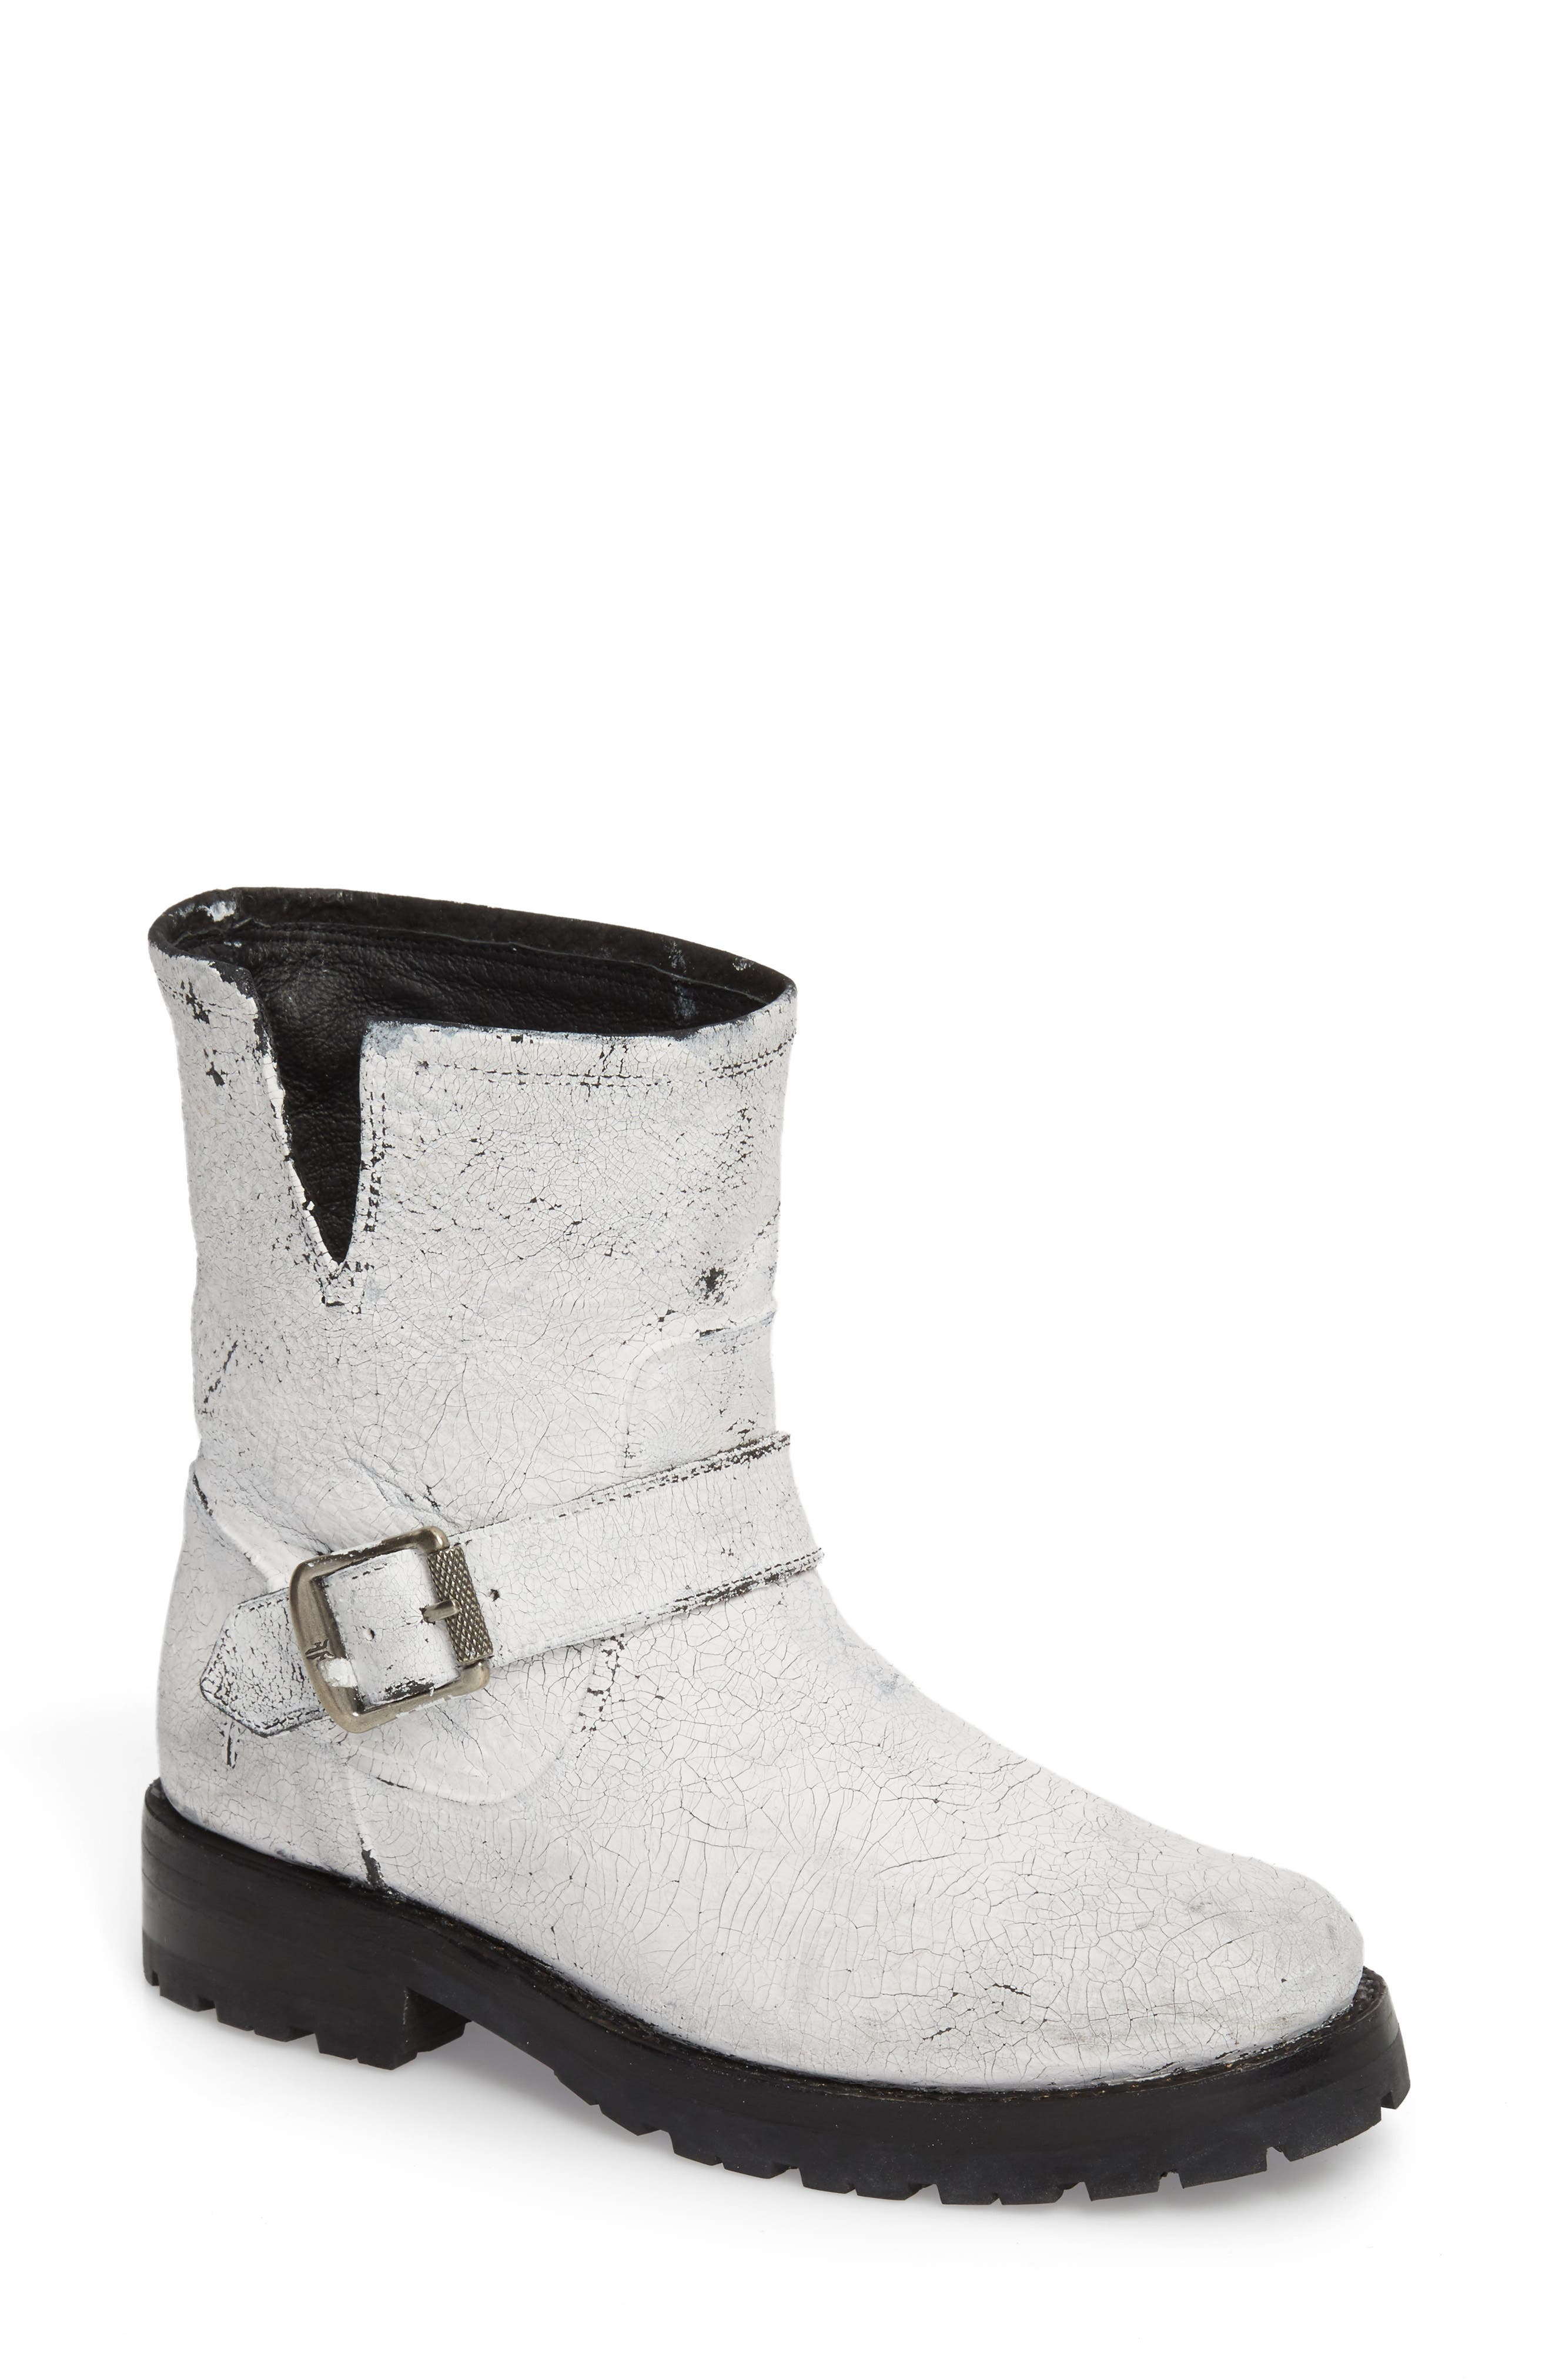 Frye Natalie Engineer Boot, White